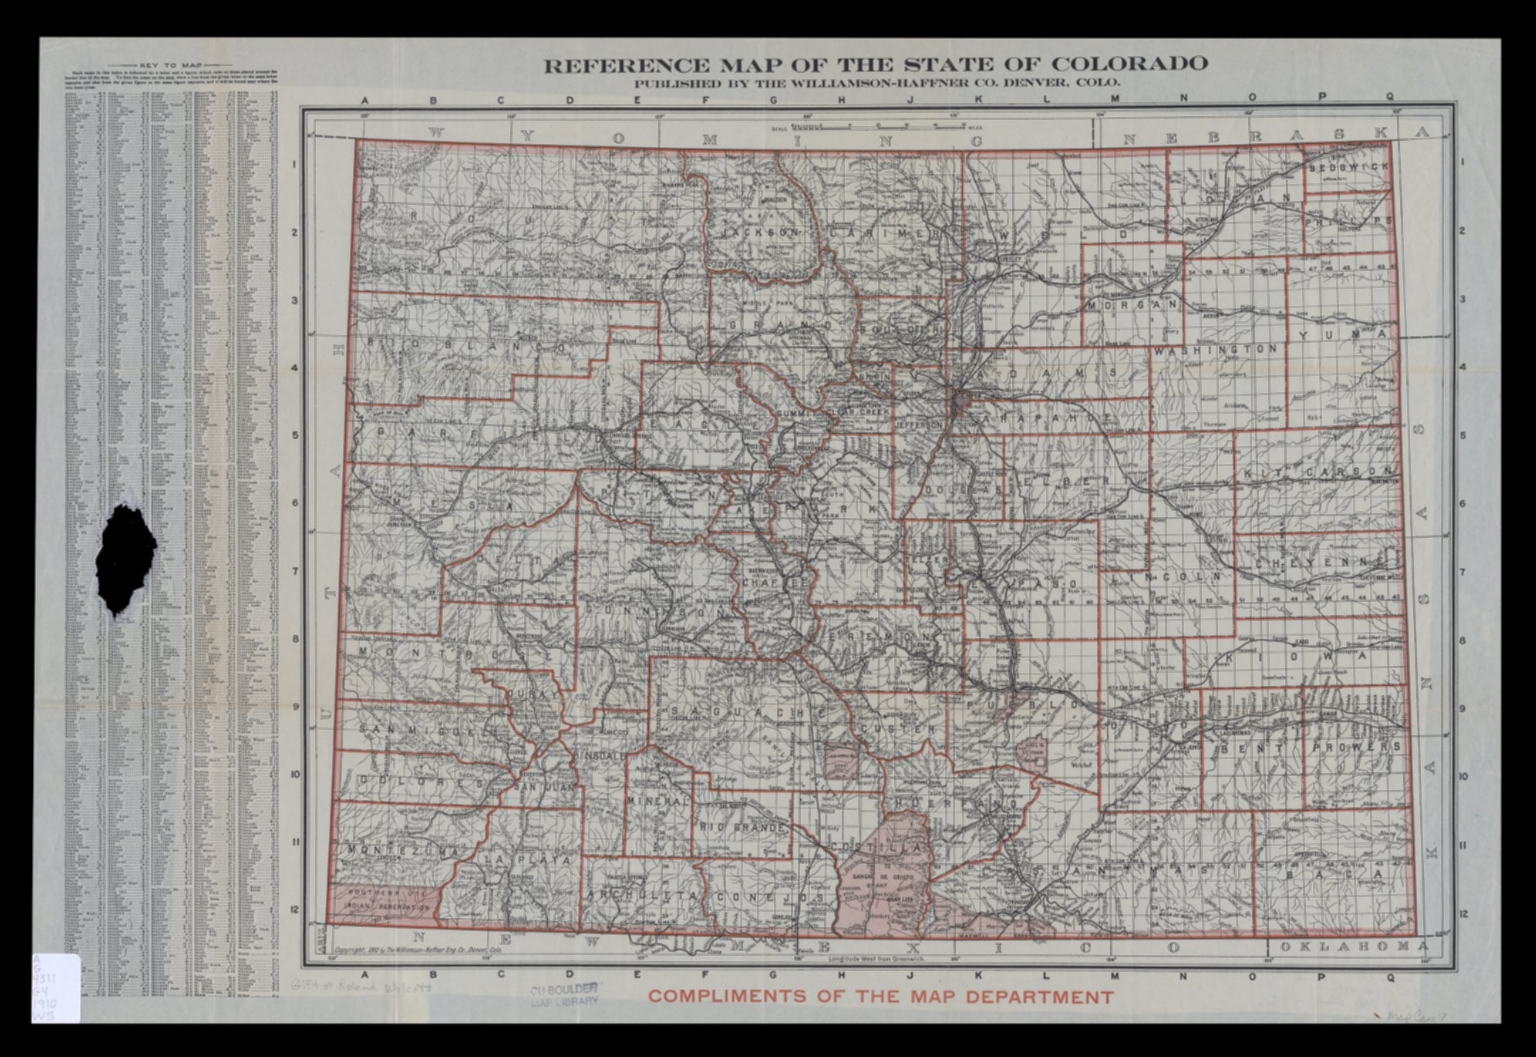 Reference map of the State of Colorado